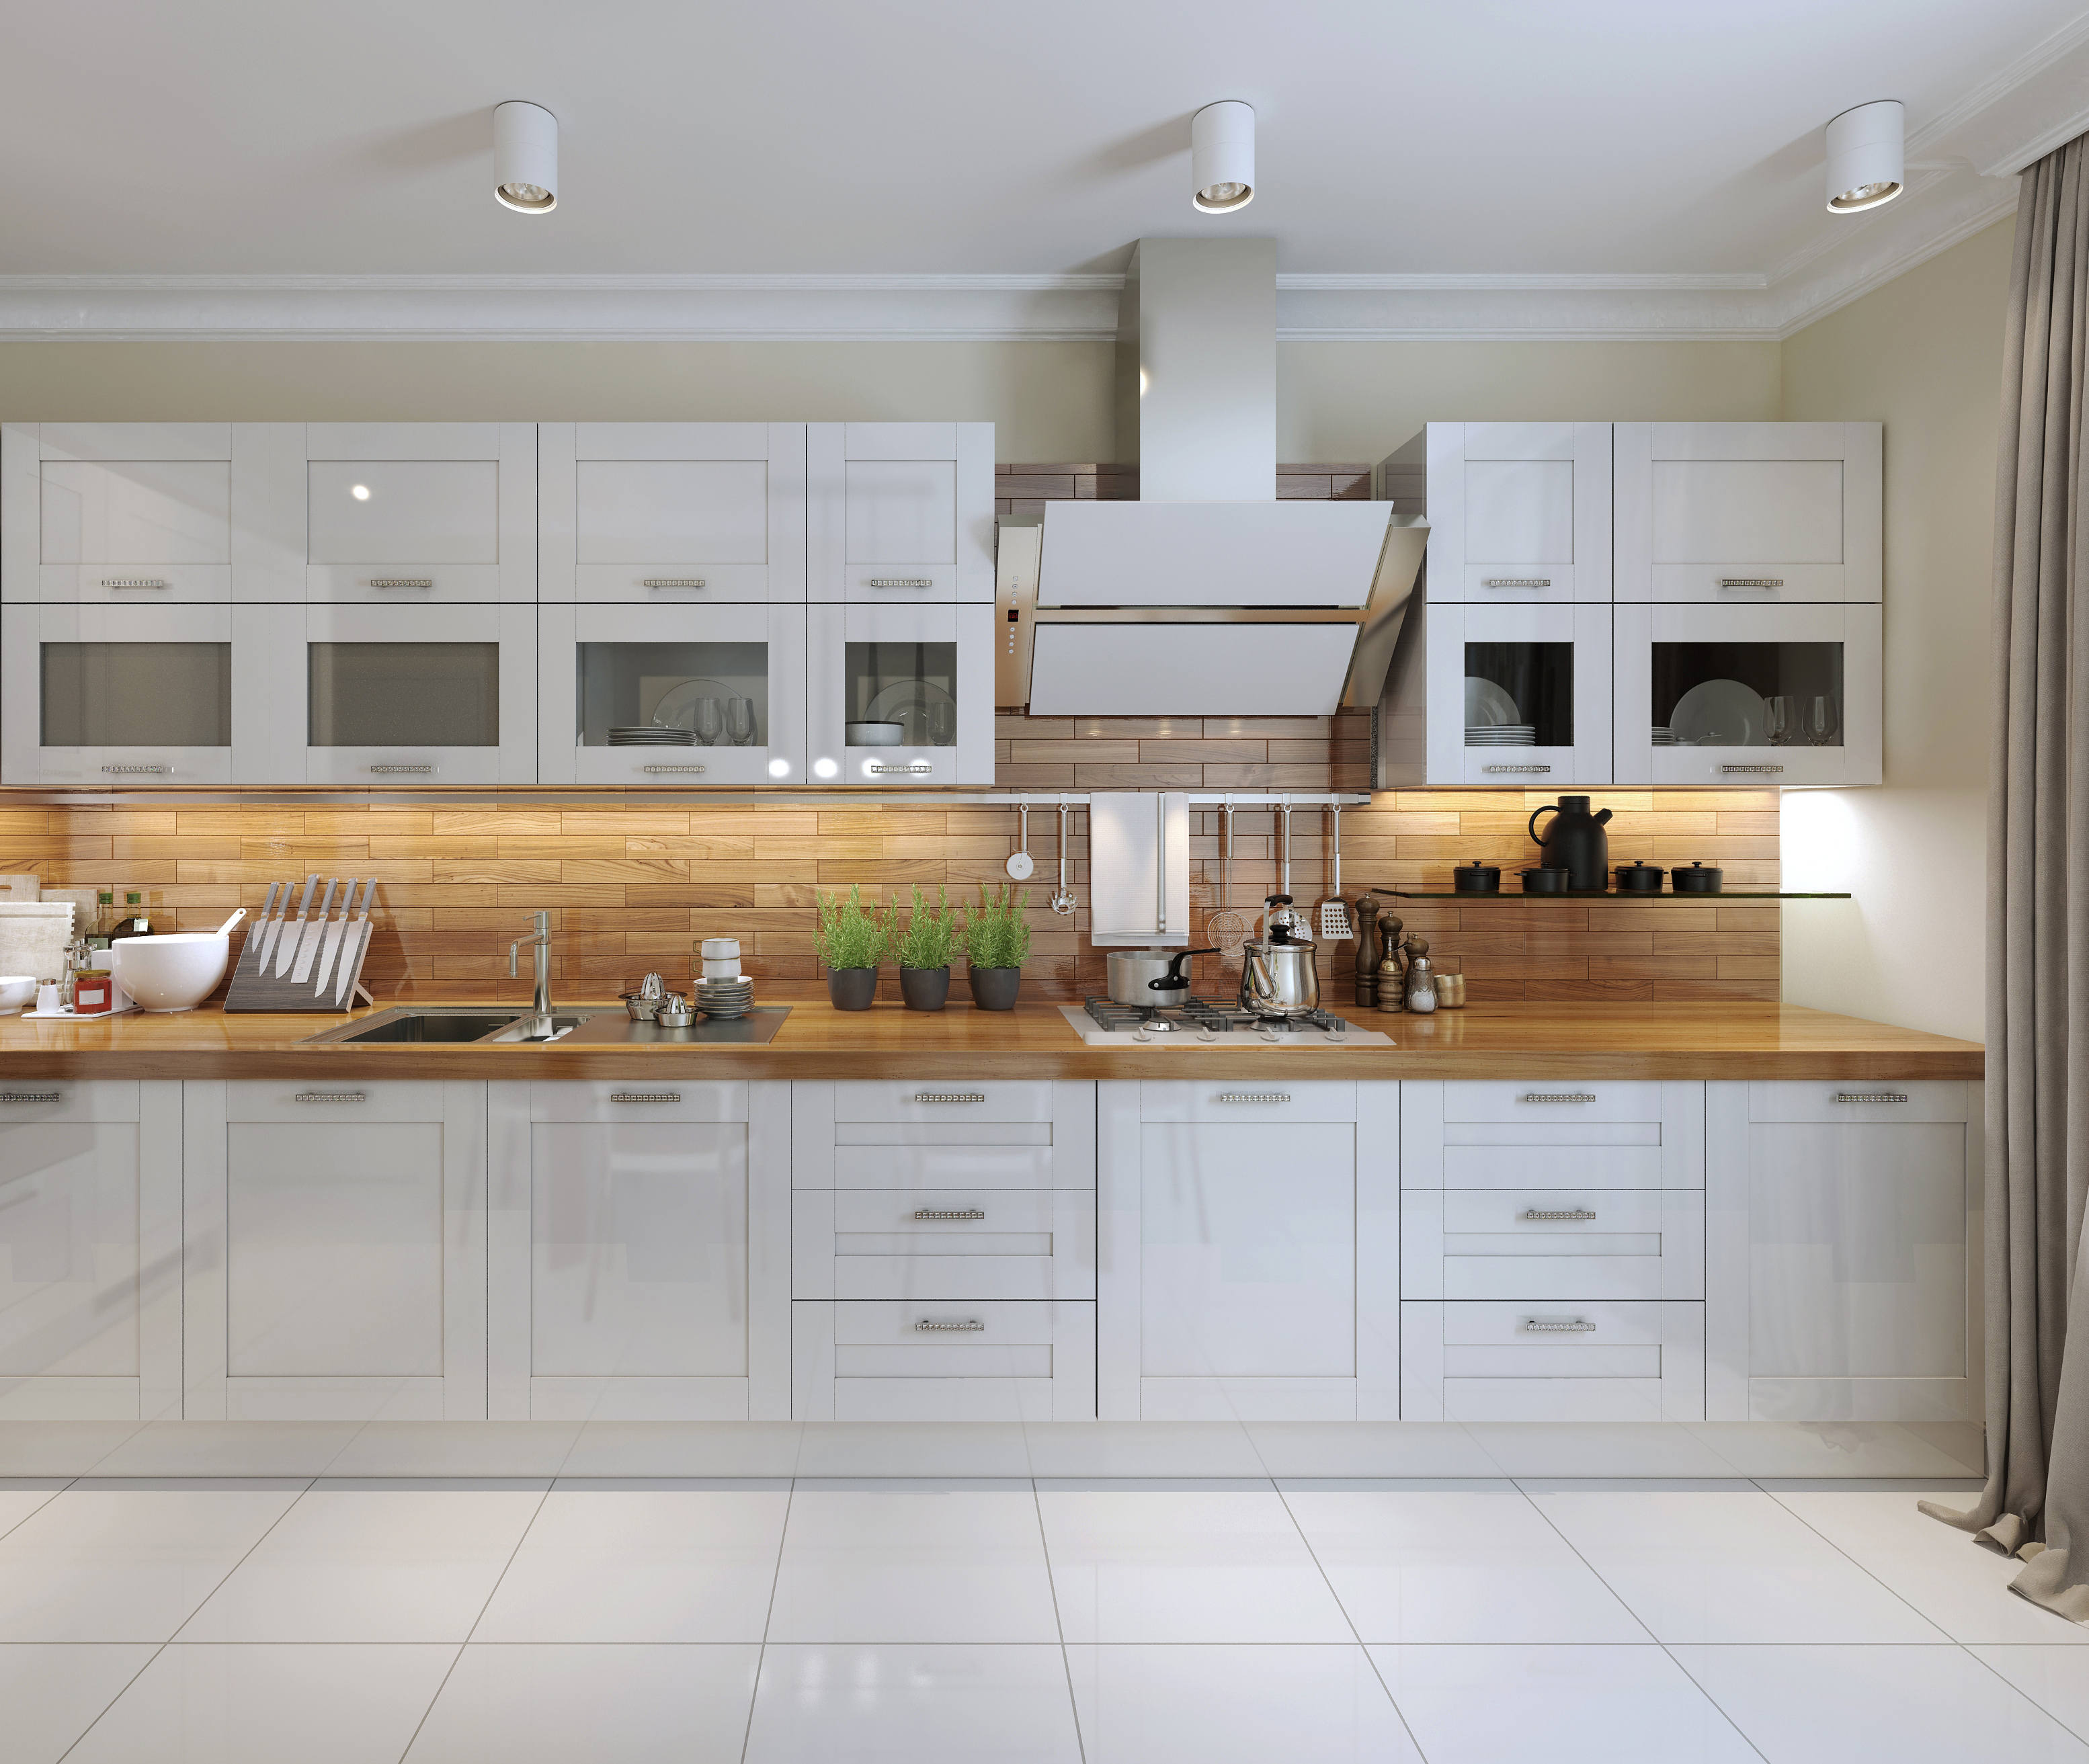 Kitchen Layout Peninsula: Ideas For Kitchens - Layout & Design